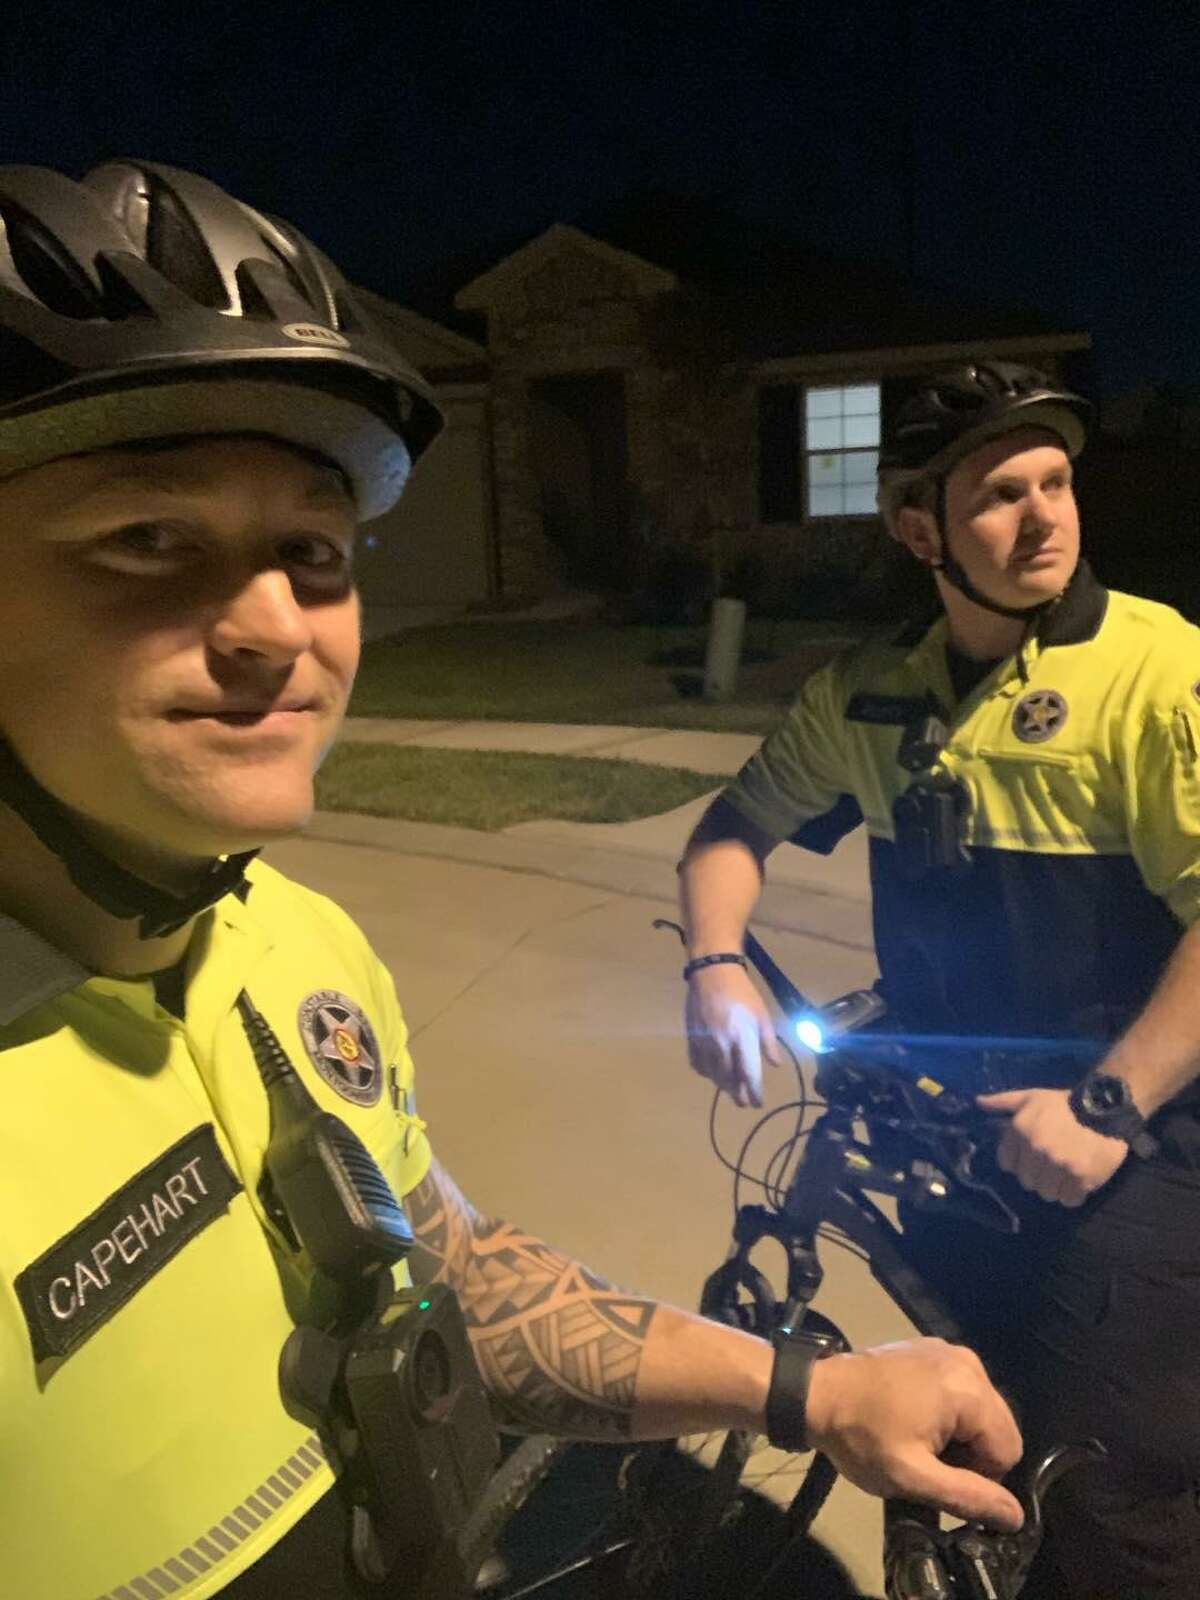 A pair of Montgomery County Precinct 4 Constable's deputies on bike patrol in an east county subdivision pose for a photo.